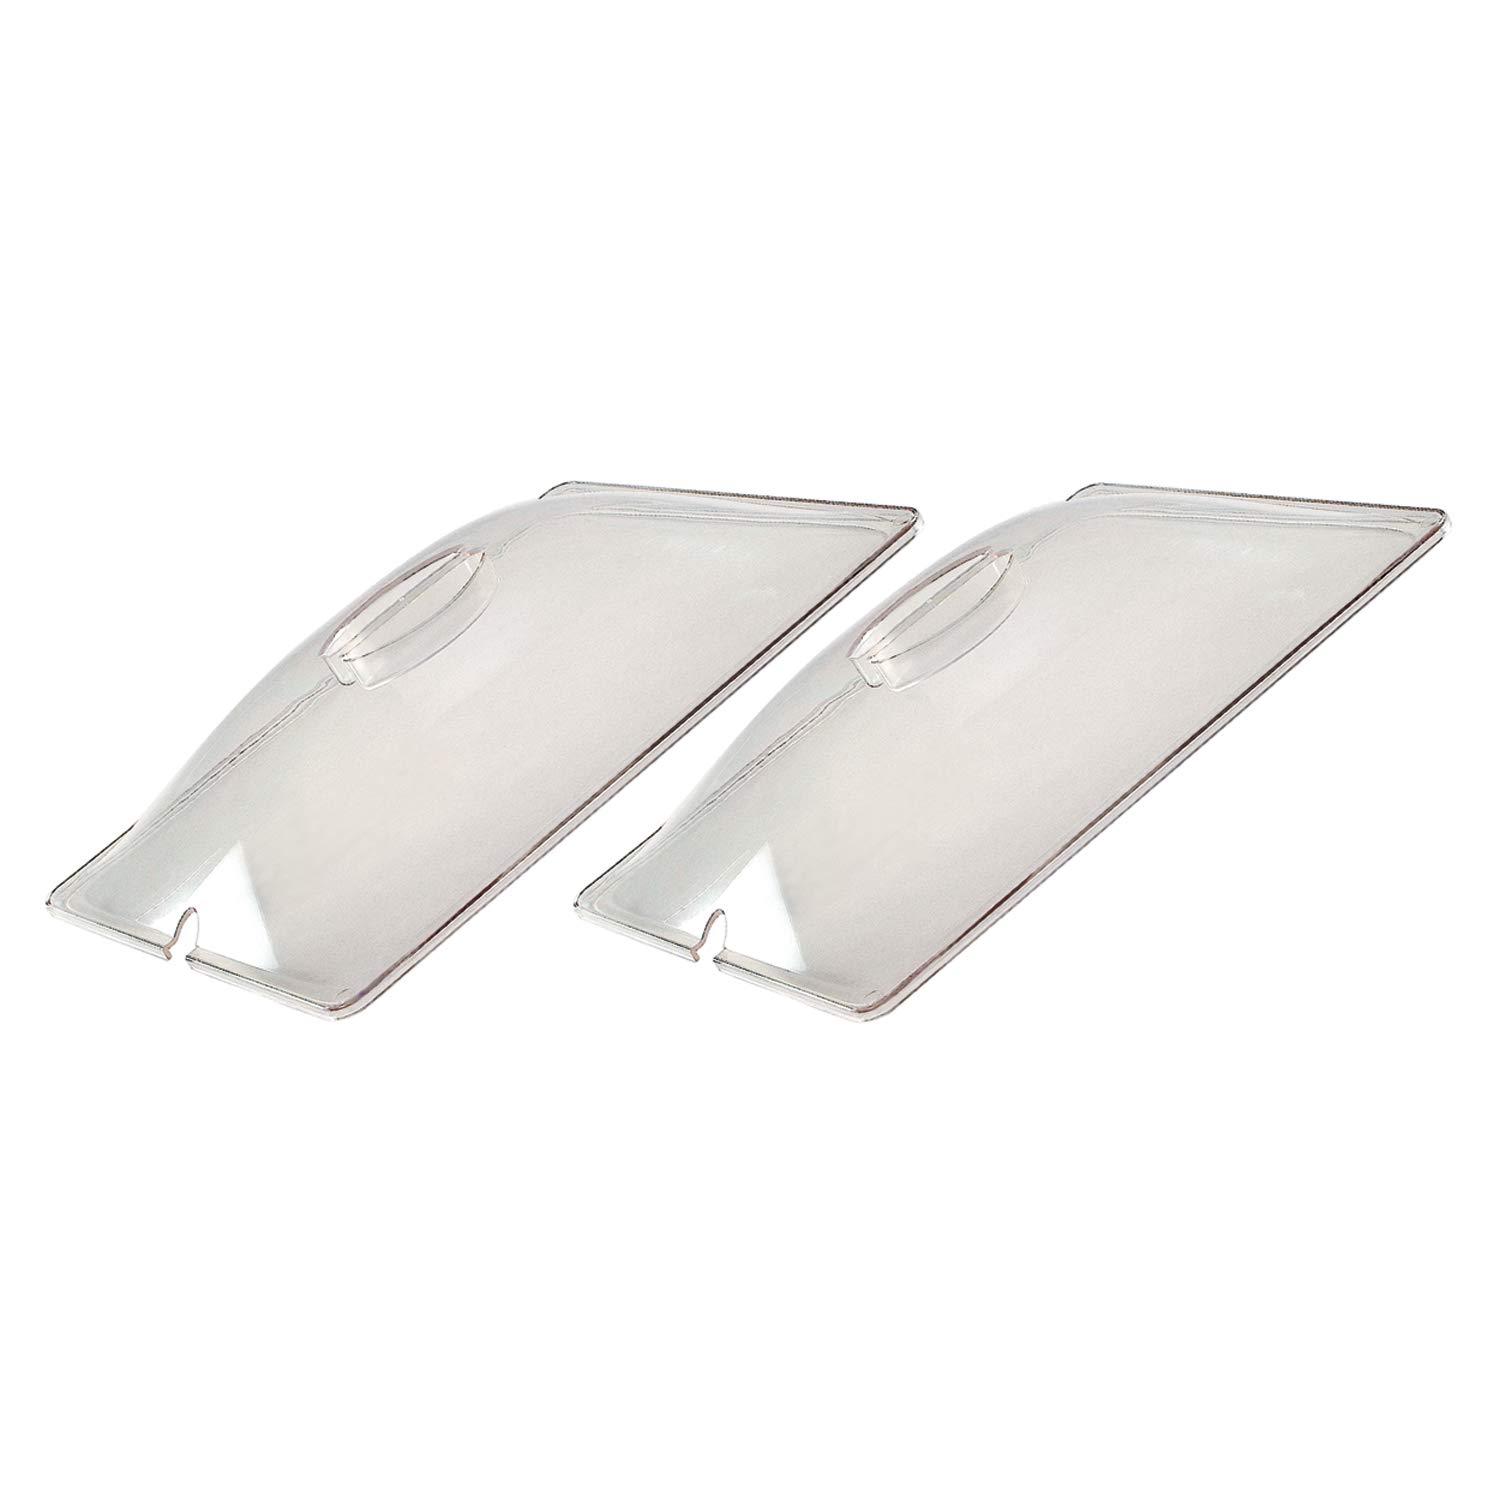 Cadco CL-2 Half-Size Clear Polycarbonate Lids Accessory Pack